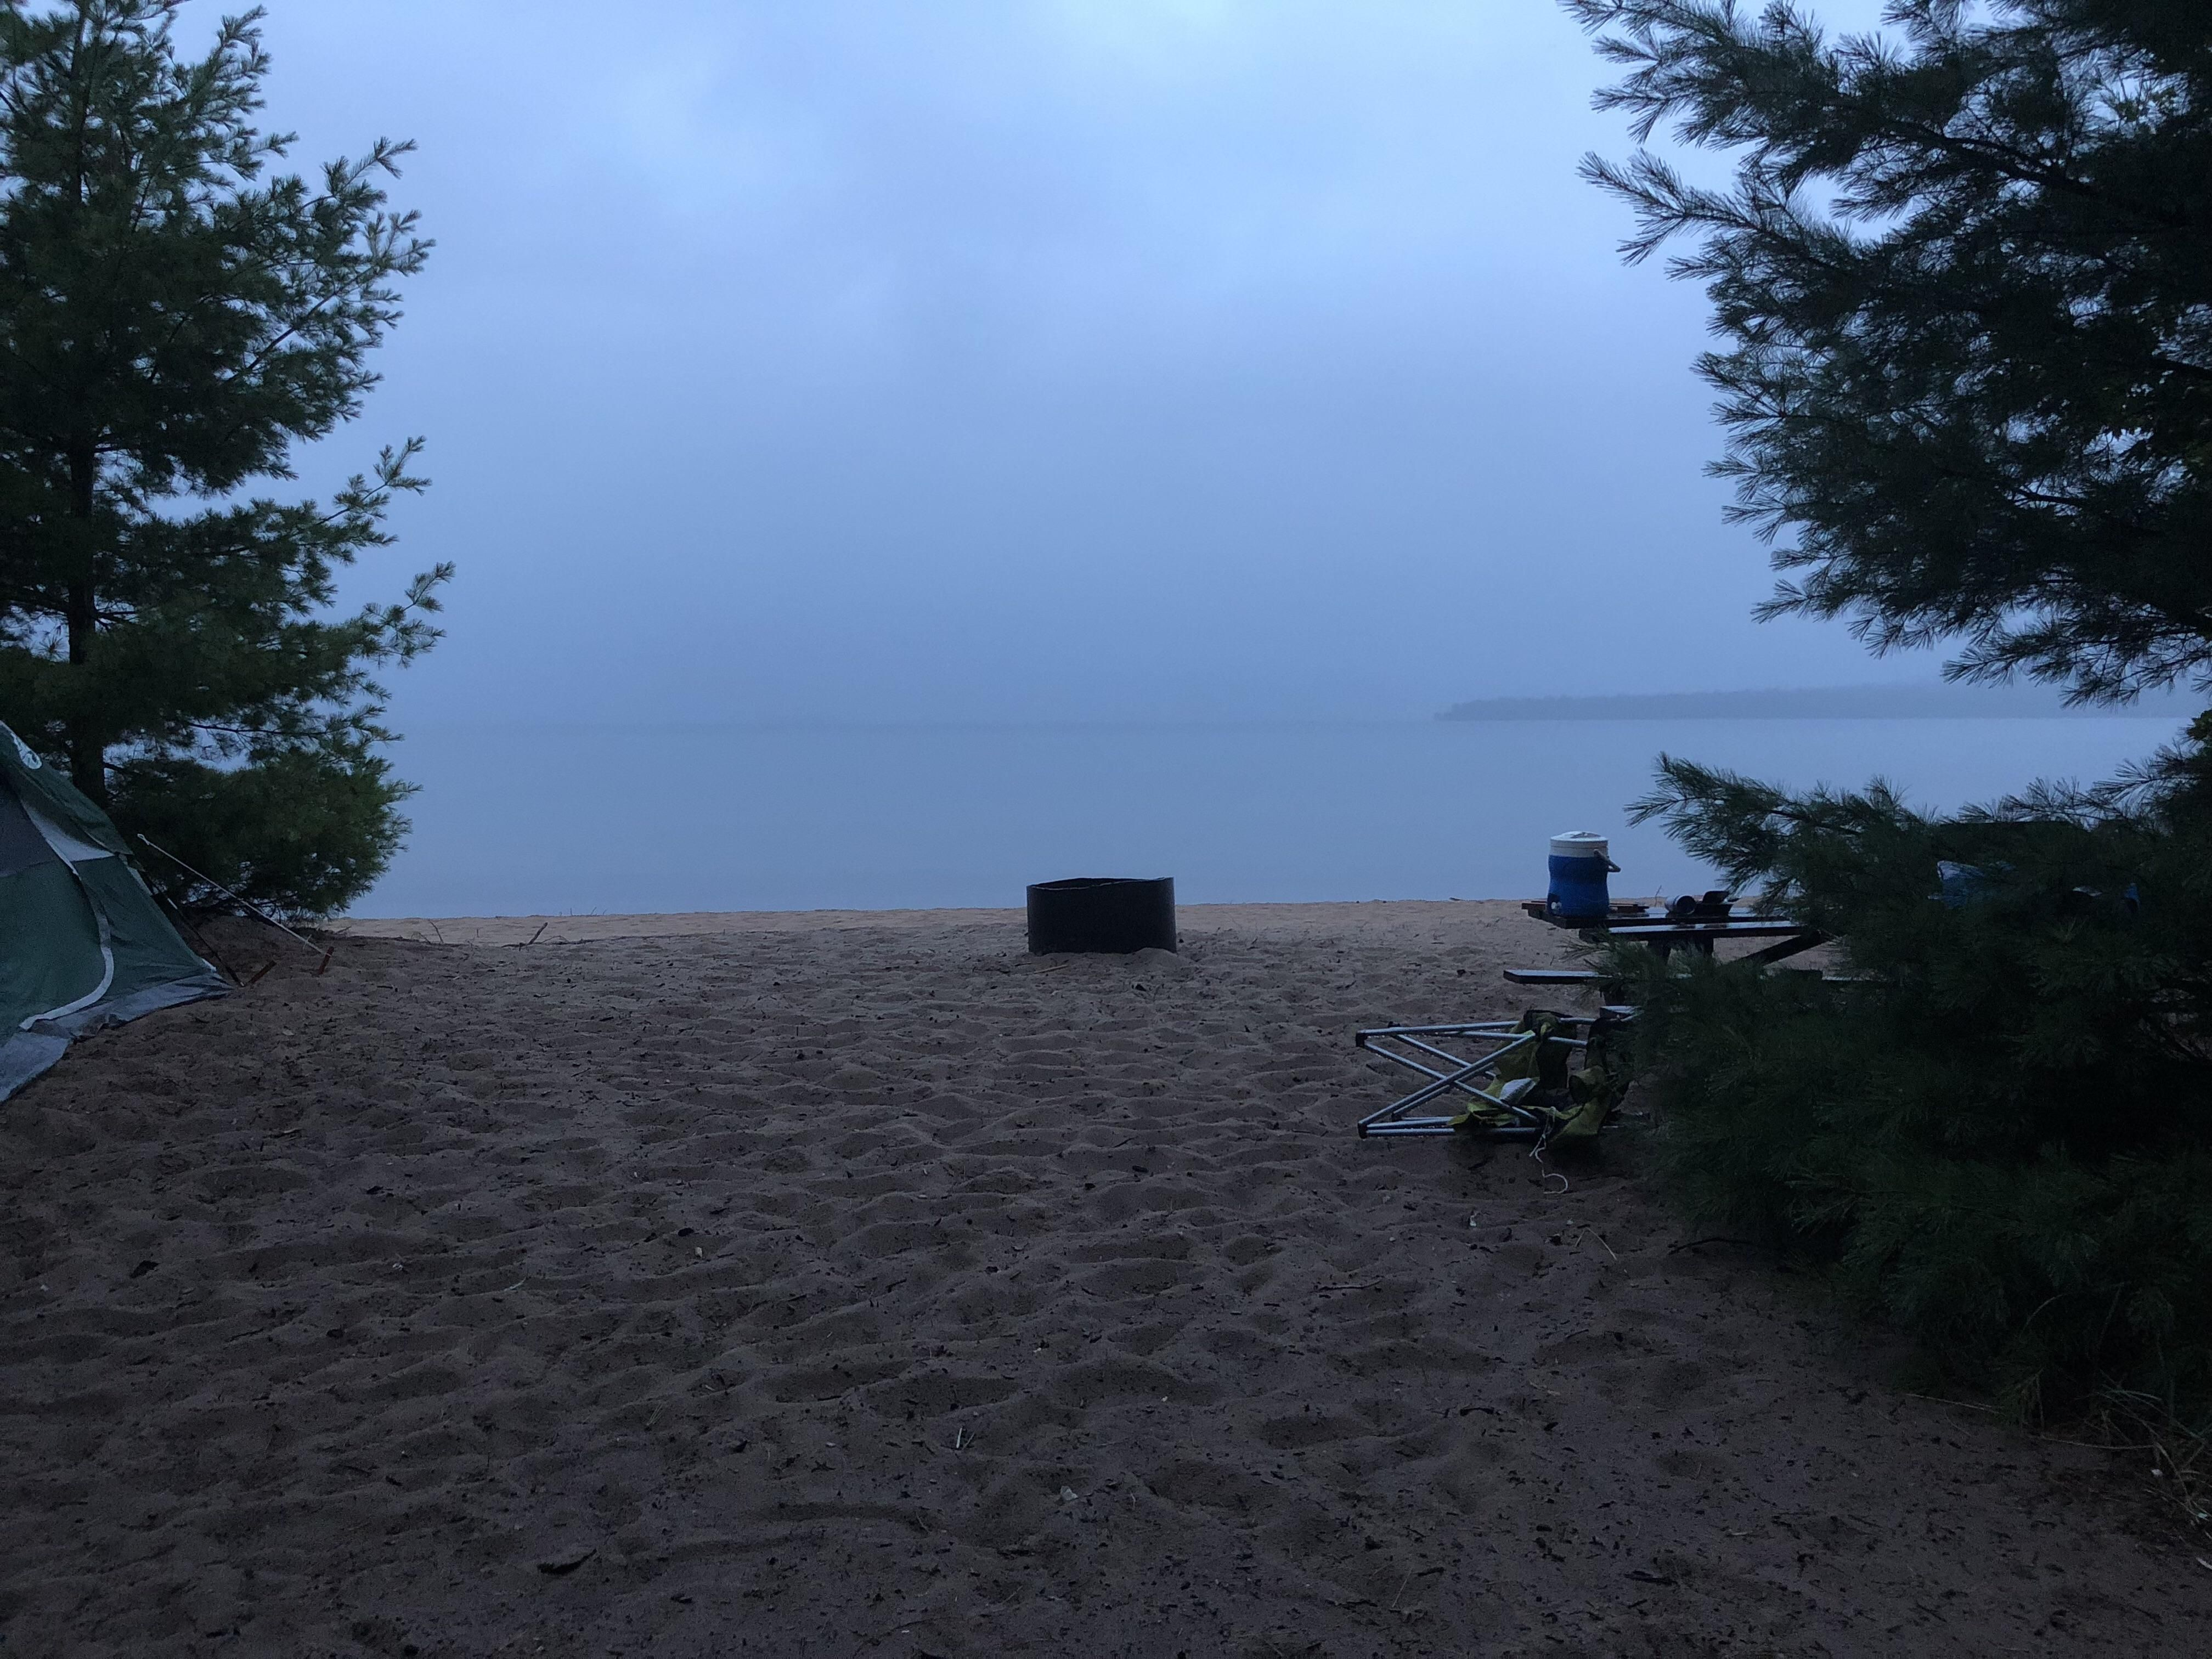 Camping near Lake Superior. Early morning in August. # ...